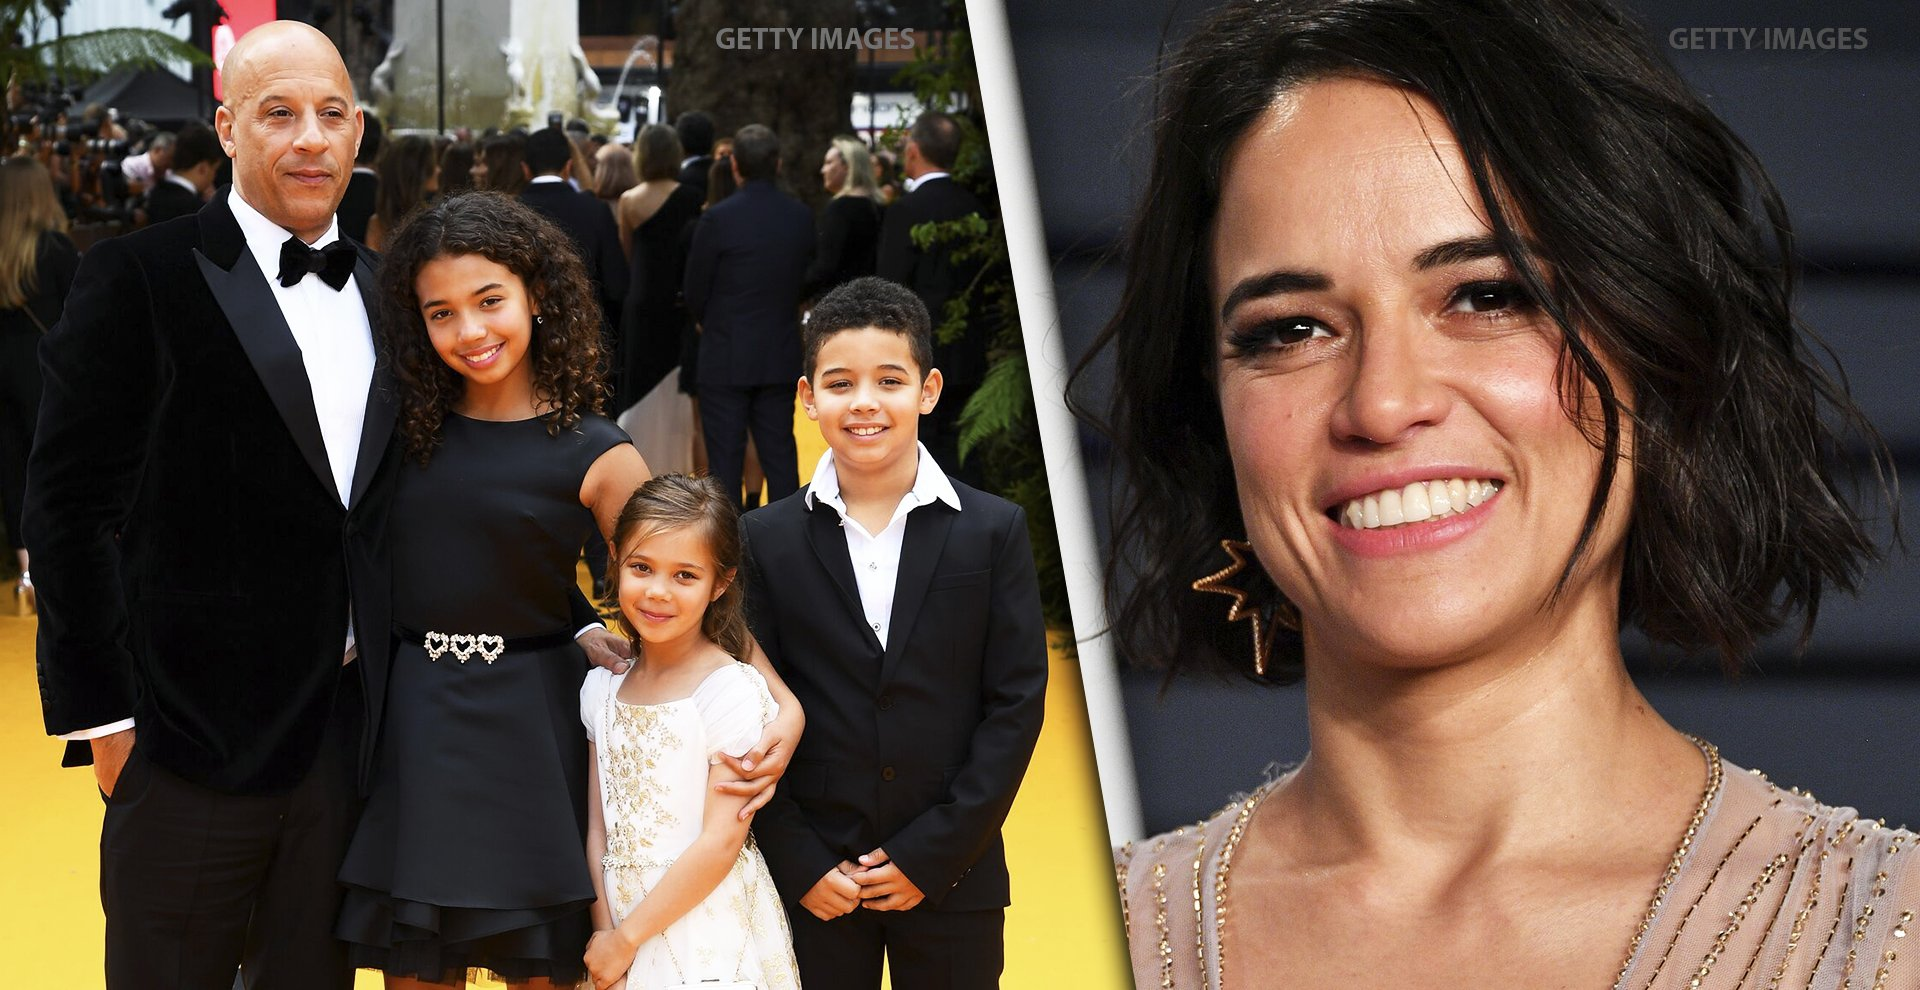 The Fast Family Rocks: Real-life Stories Behind The Fast and The Furious